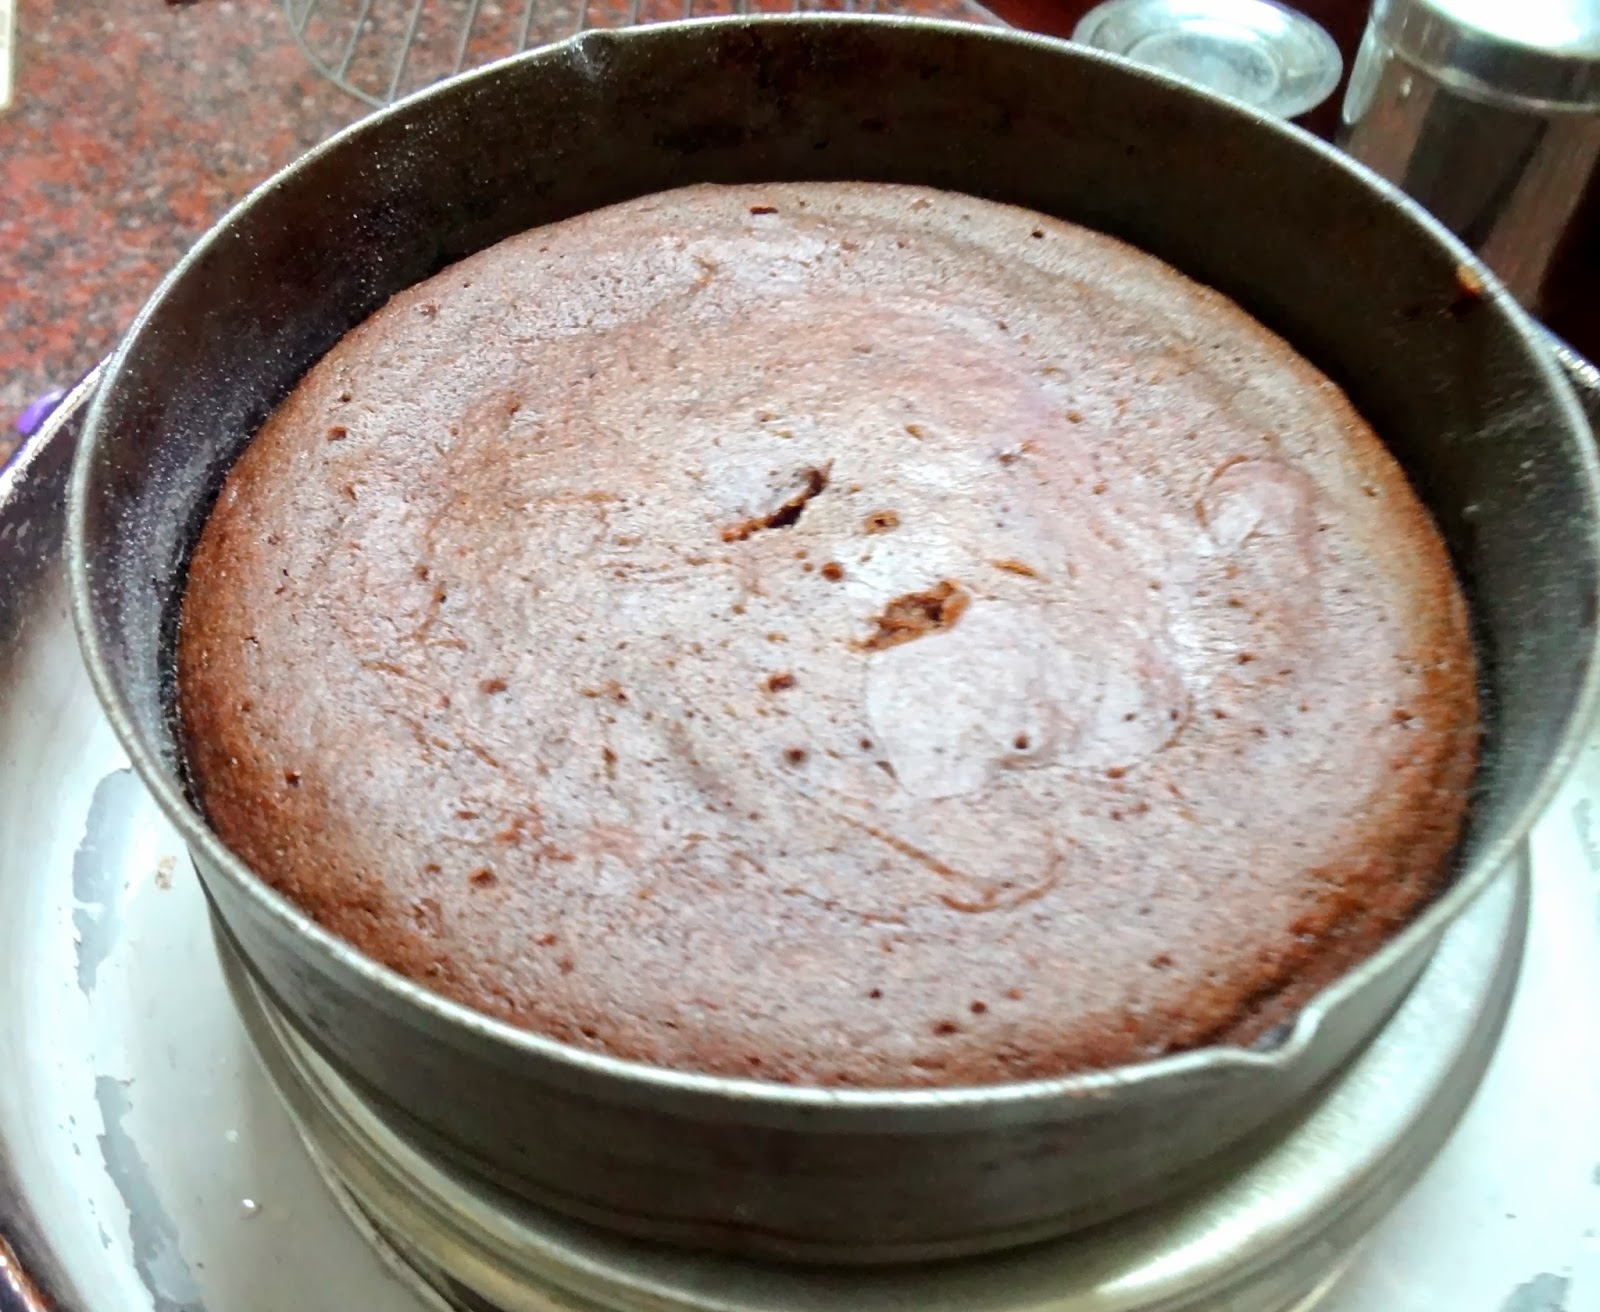 Chocolate Cake Recipe Moist Uk: Your Everyday Cook: Moist Eggless Chocolate Cake ( Butter